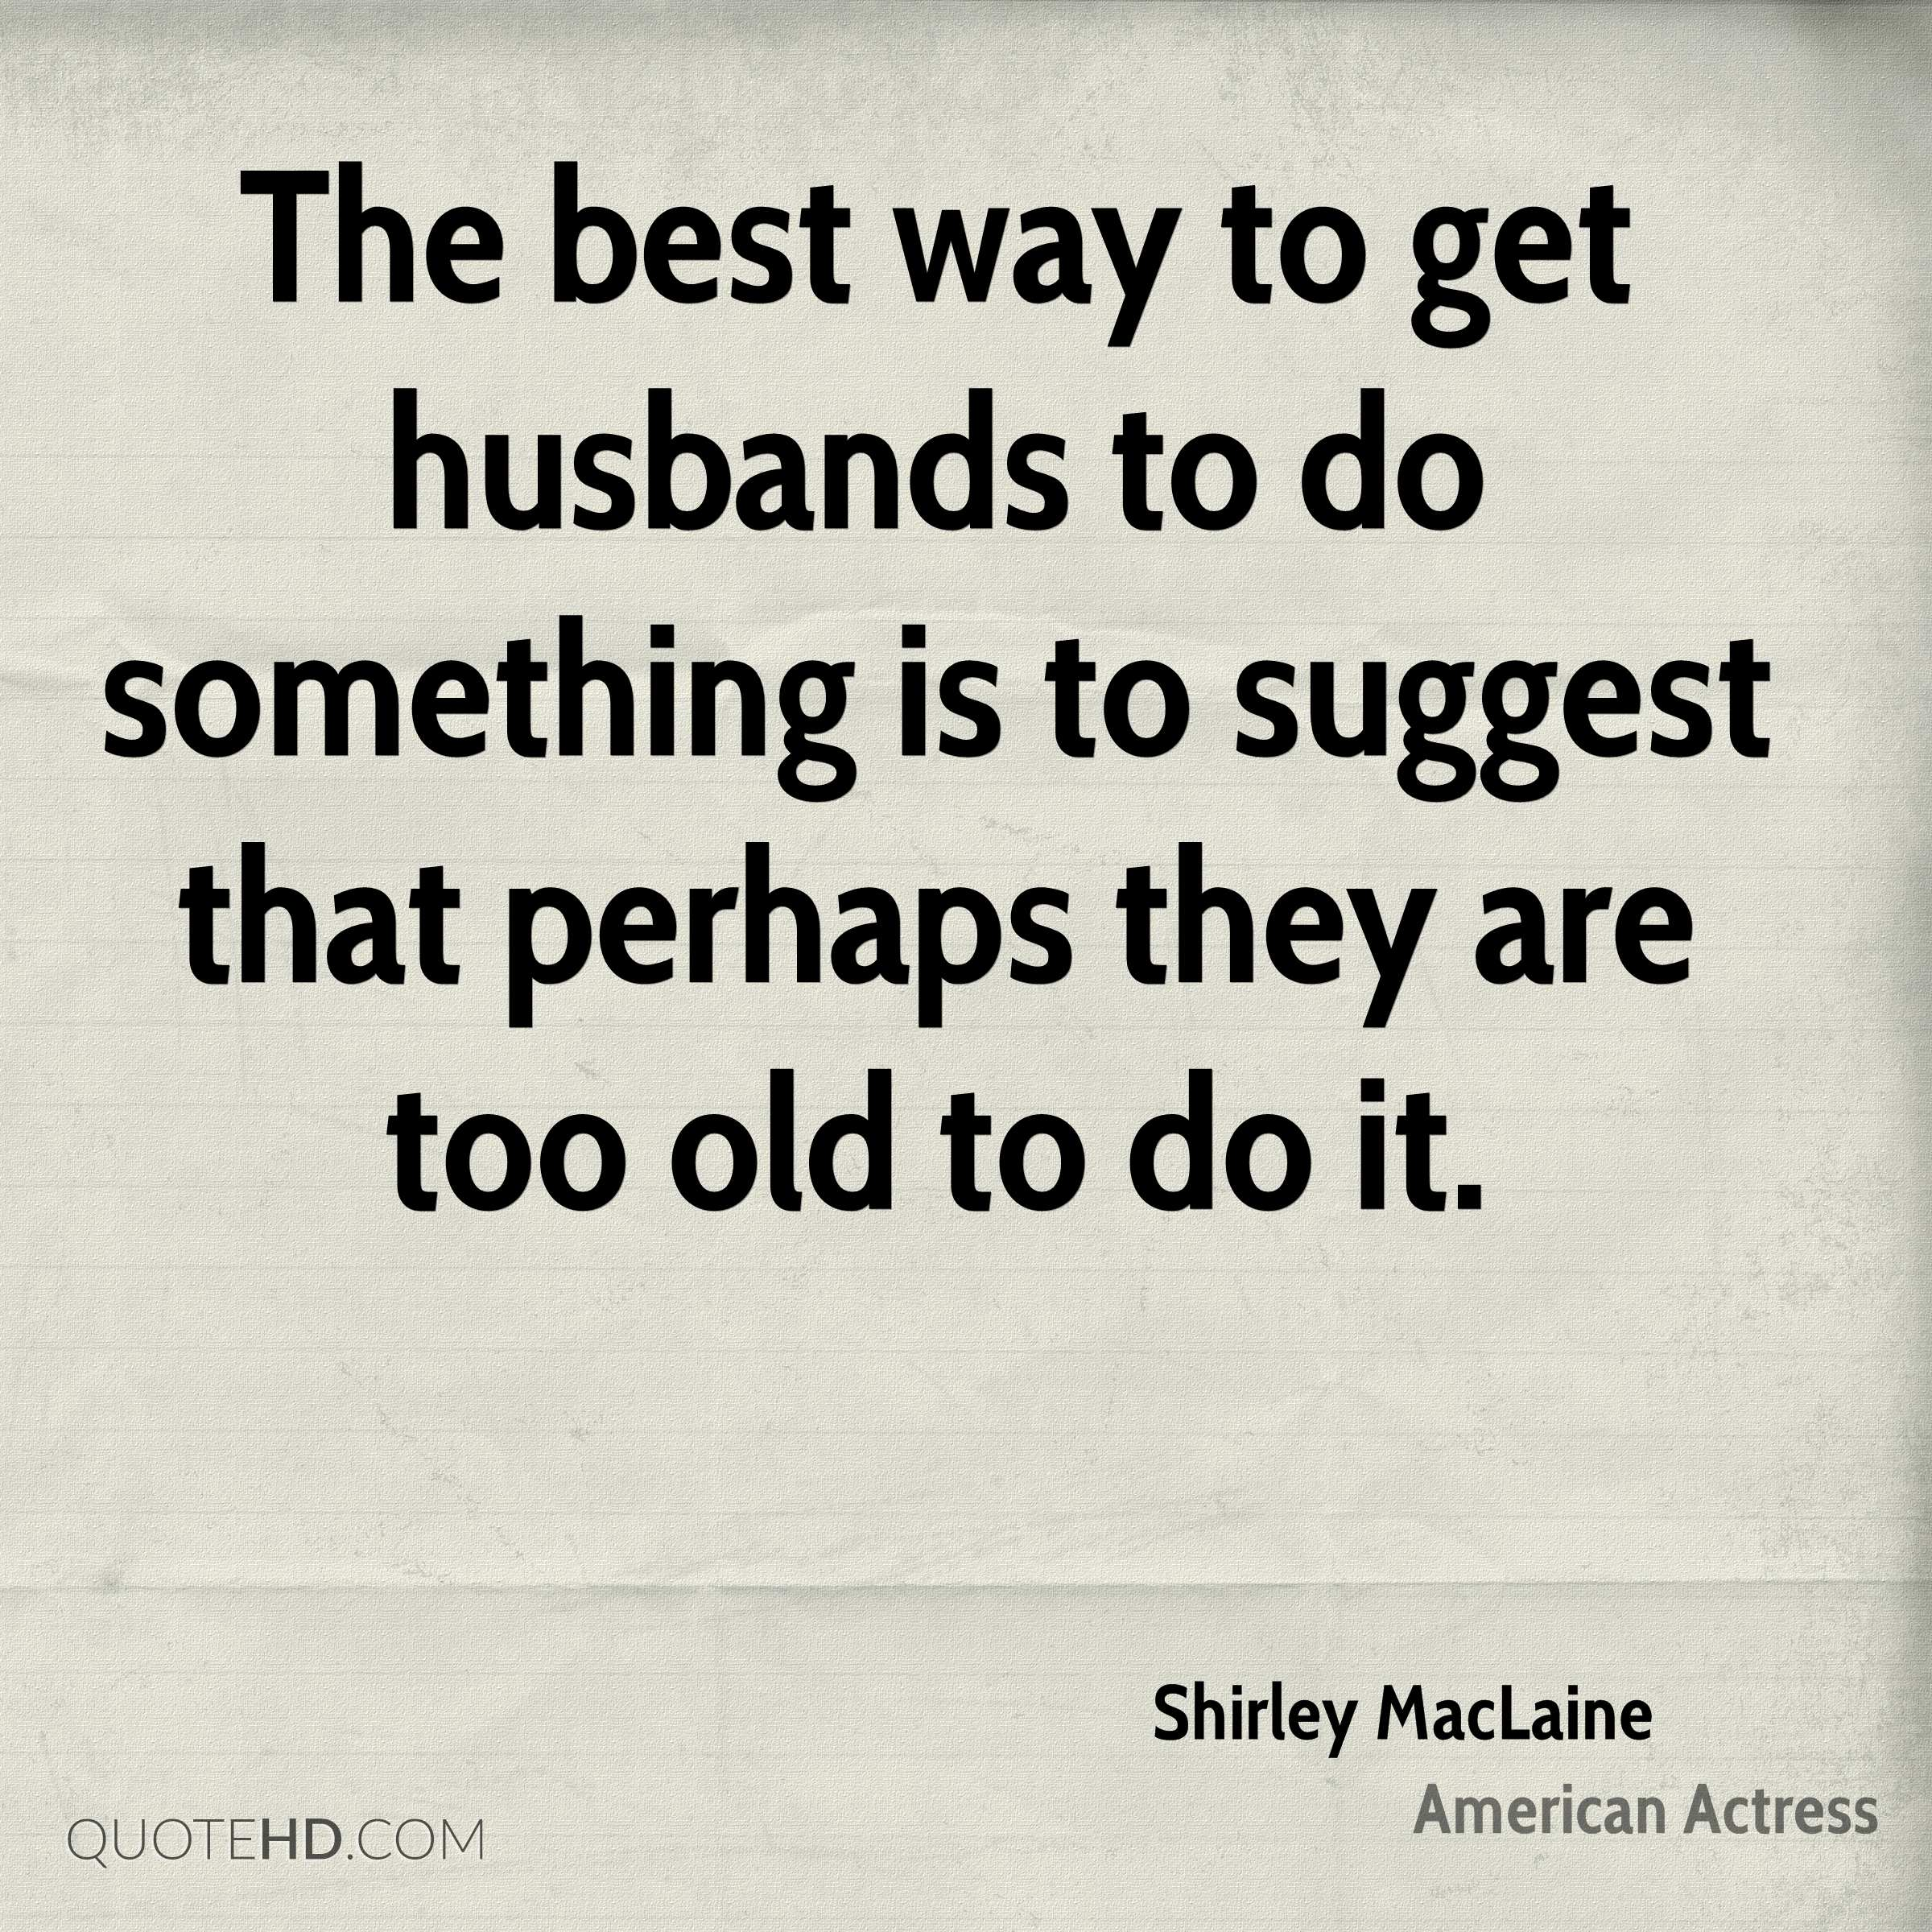 Quotes About Husbands And Love Shirley Maclaine Husband Quotes  Quotehd